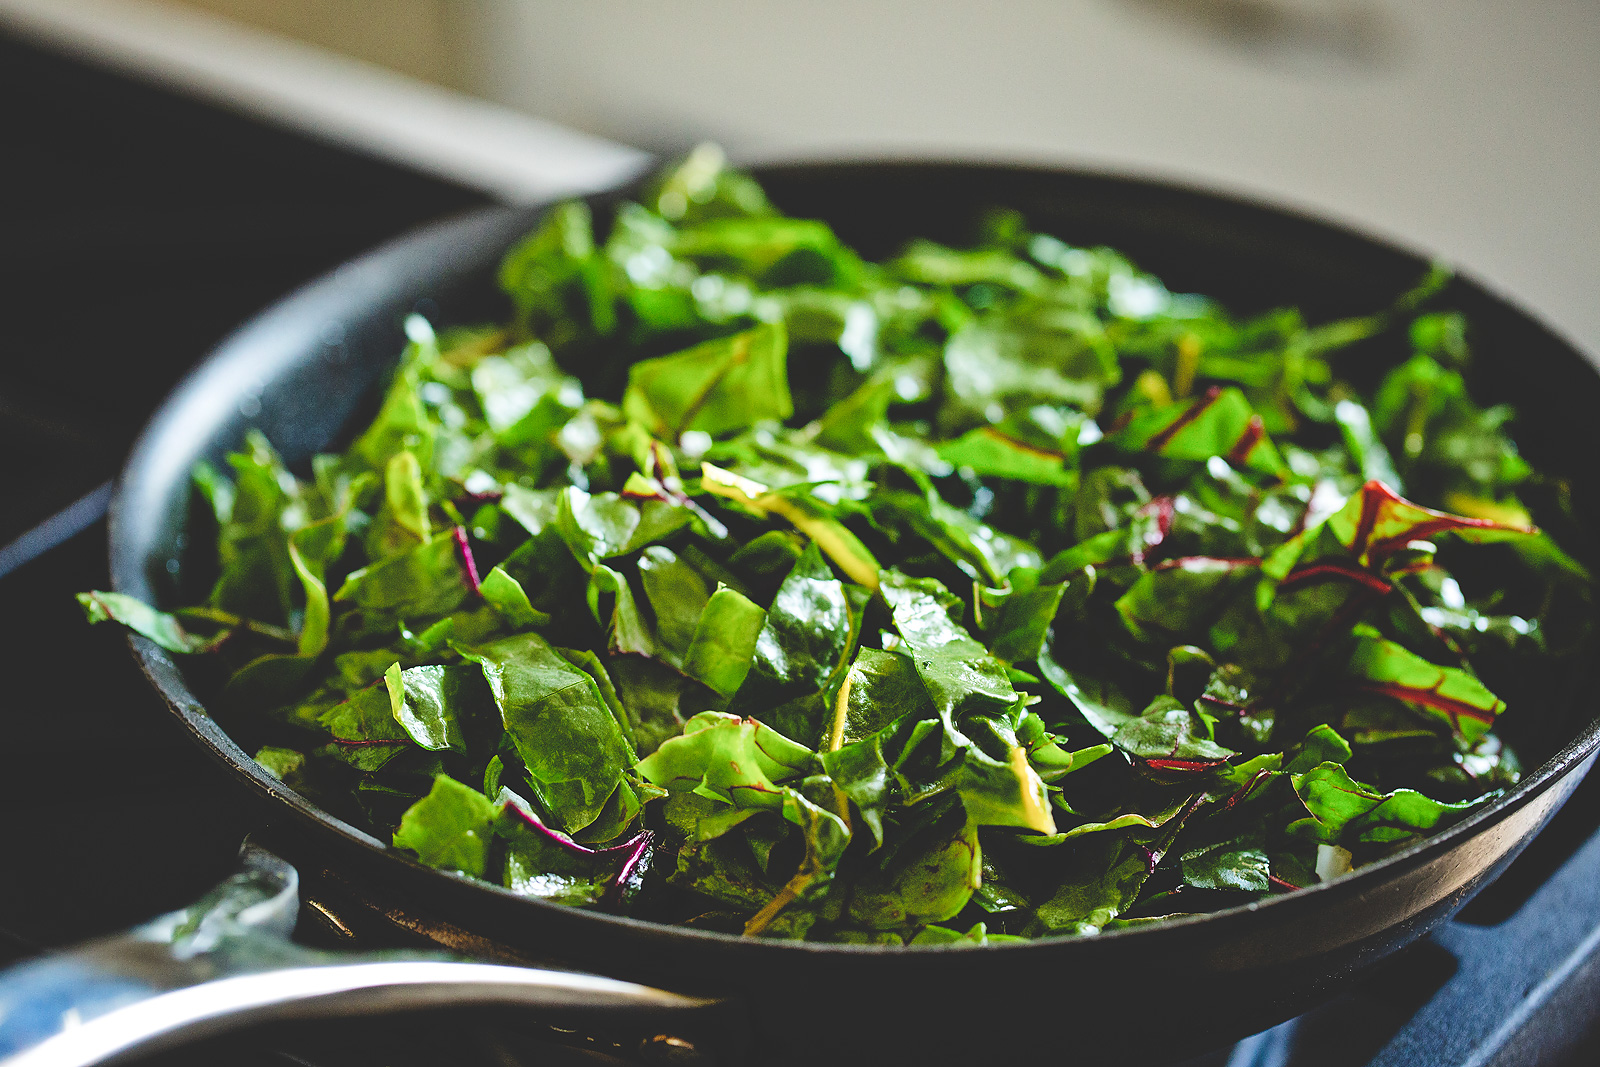 Chard in a skillet on the stove.